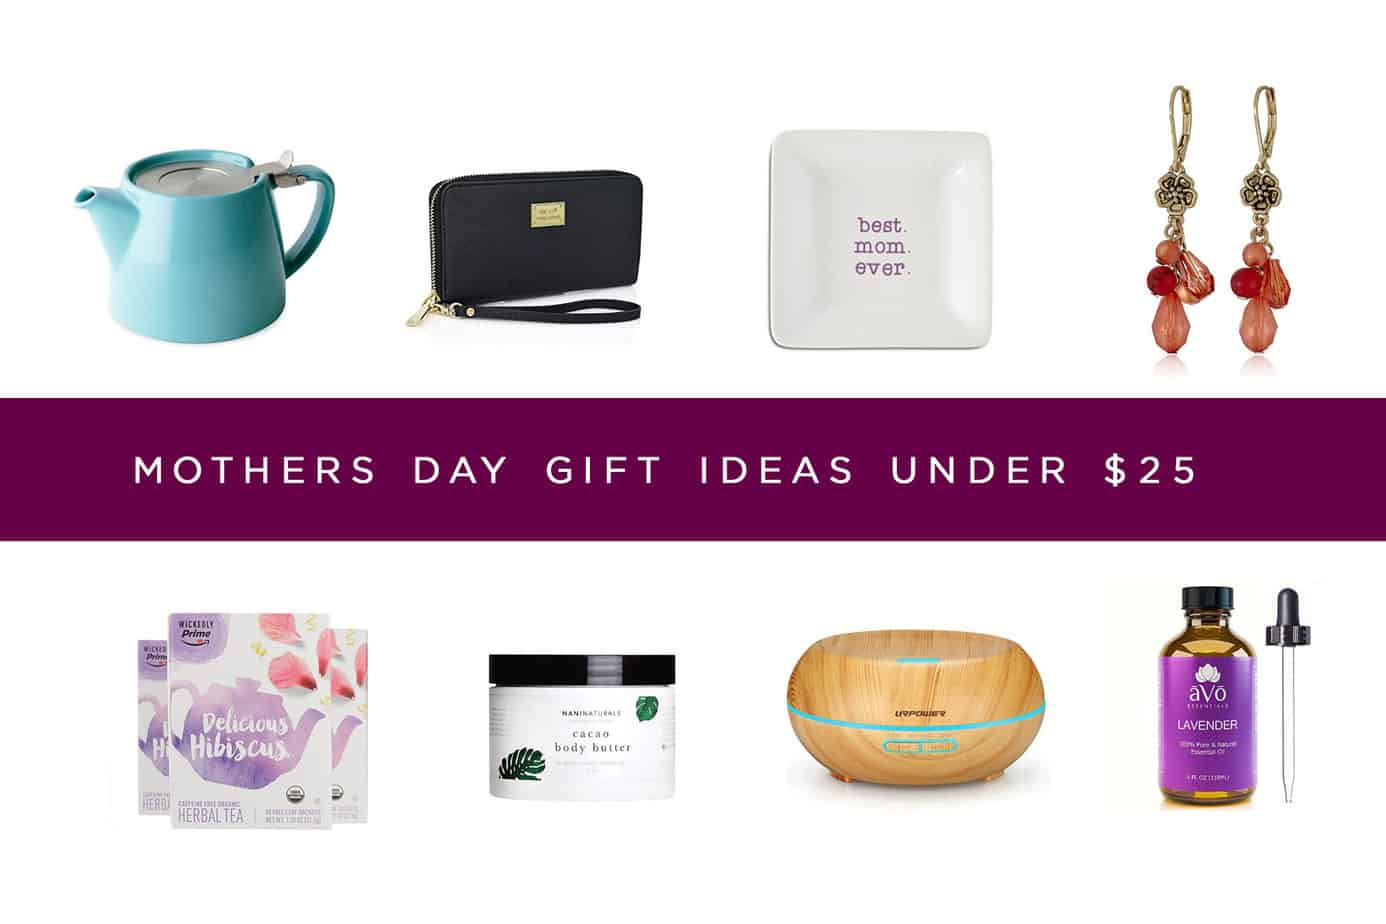 15 Awesome Mother's Day Gift Ideas Under $25